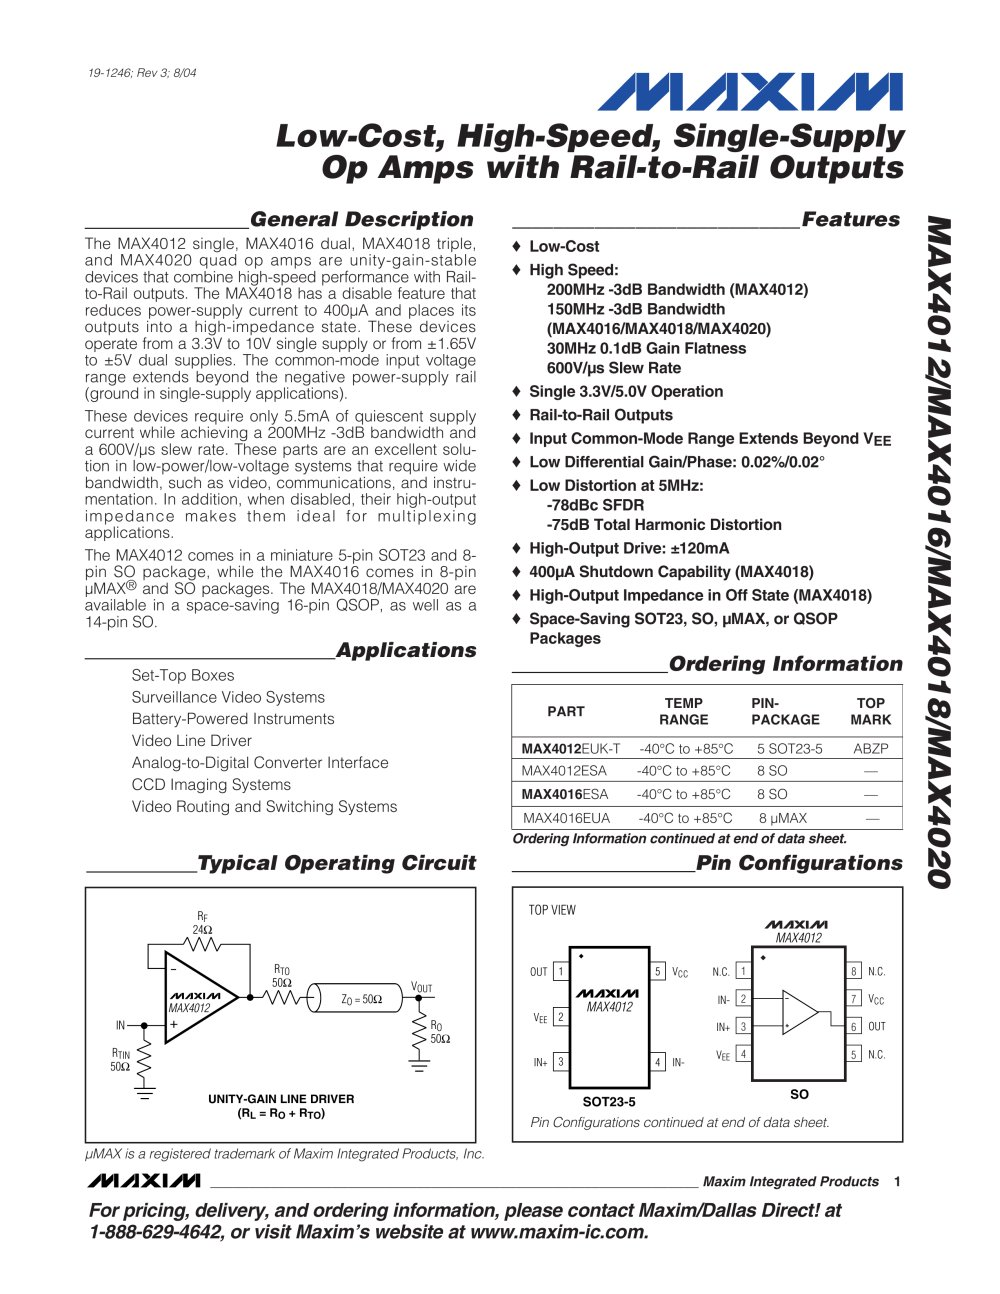 Low Cost High Speed Single Supply Op Amps With Rail To And Dual Power Quad Opamp Circuit Filtercircuit Outputs Max4012 Max4016 Max4018 Max4020 1 17 Pages